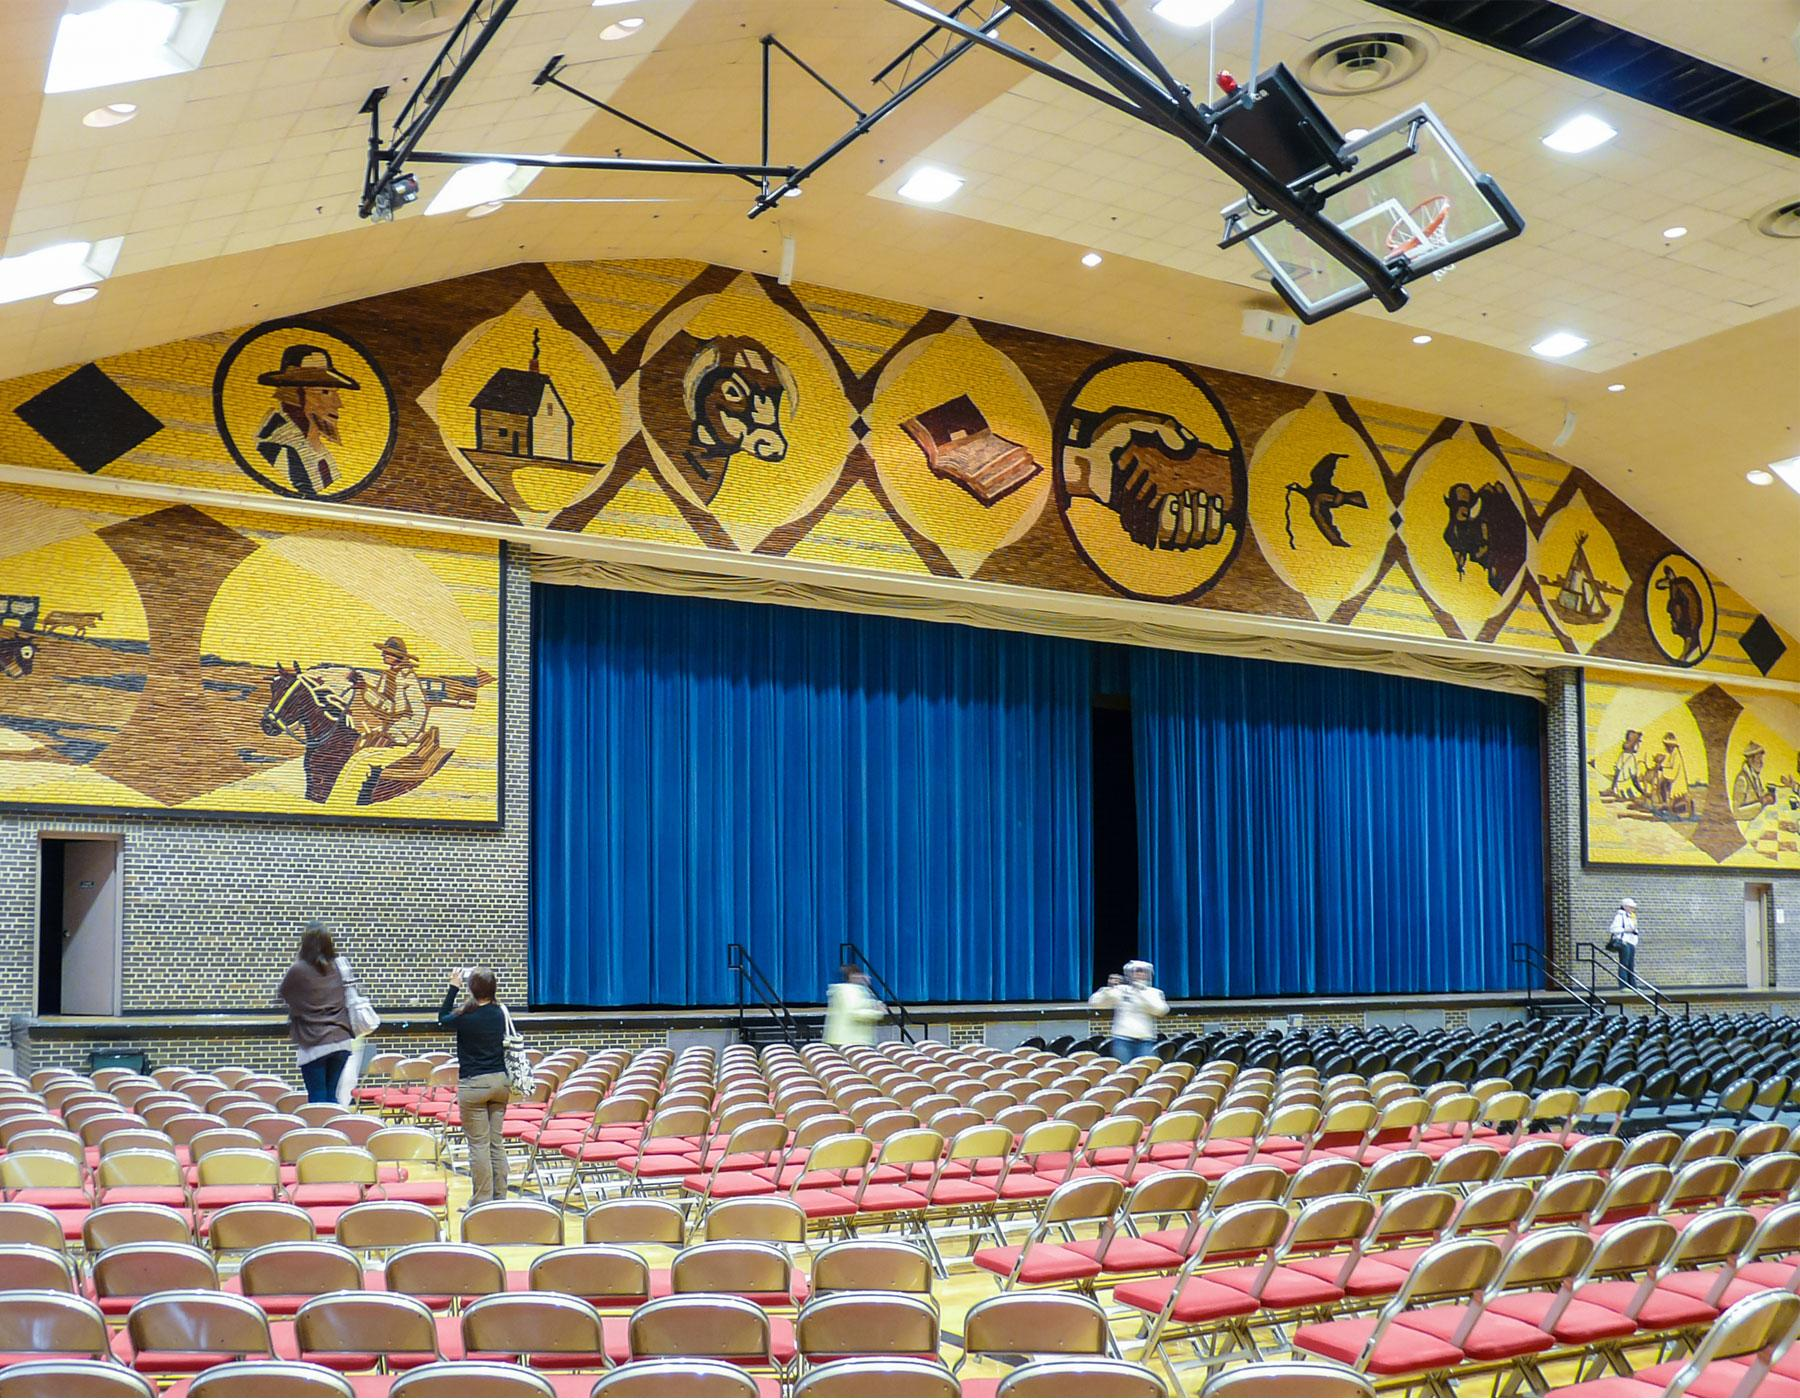 SUGH_CornPalace_Theater